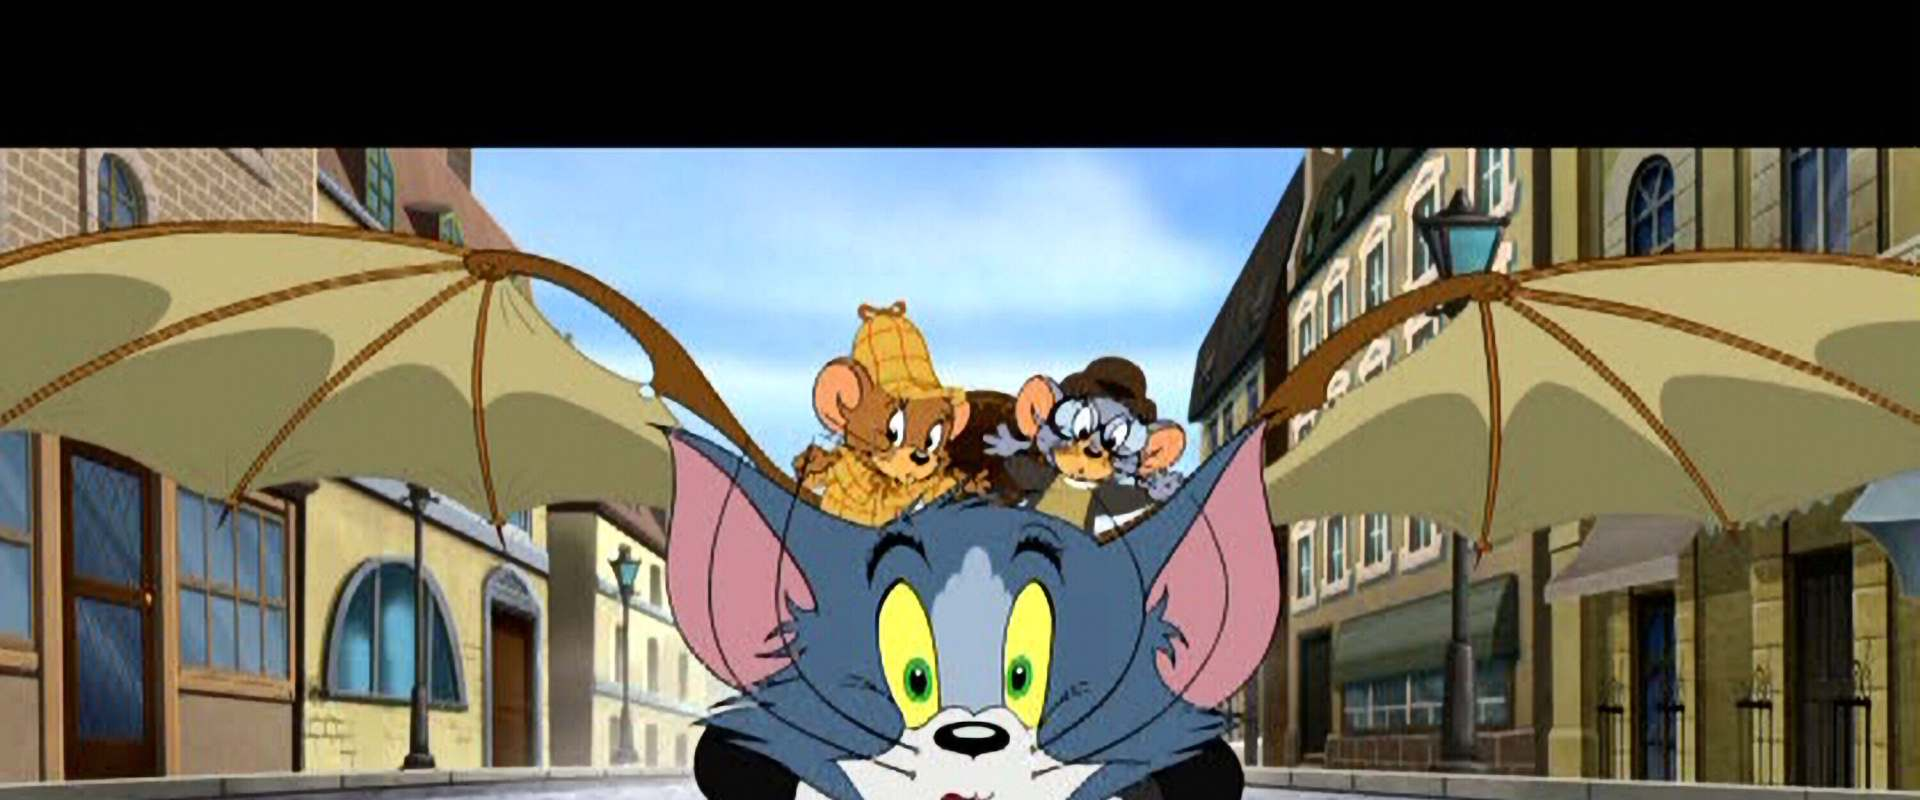 Tom and Jerry Meet Sherlock Holmes background 2